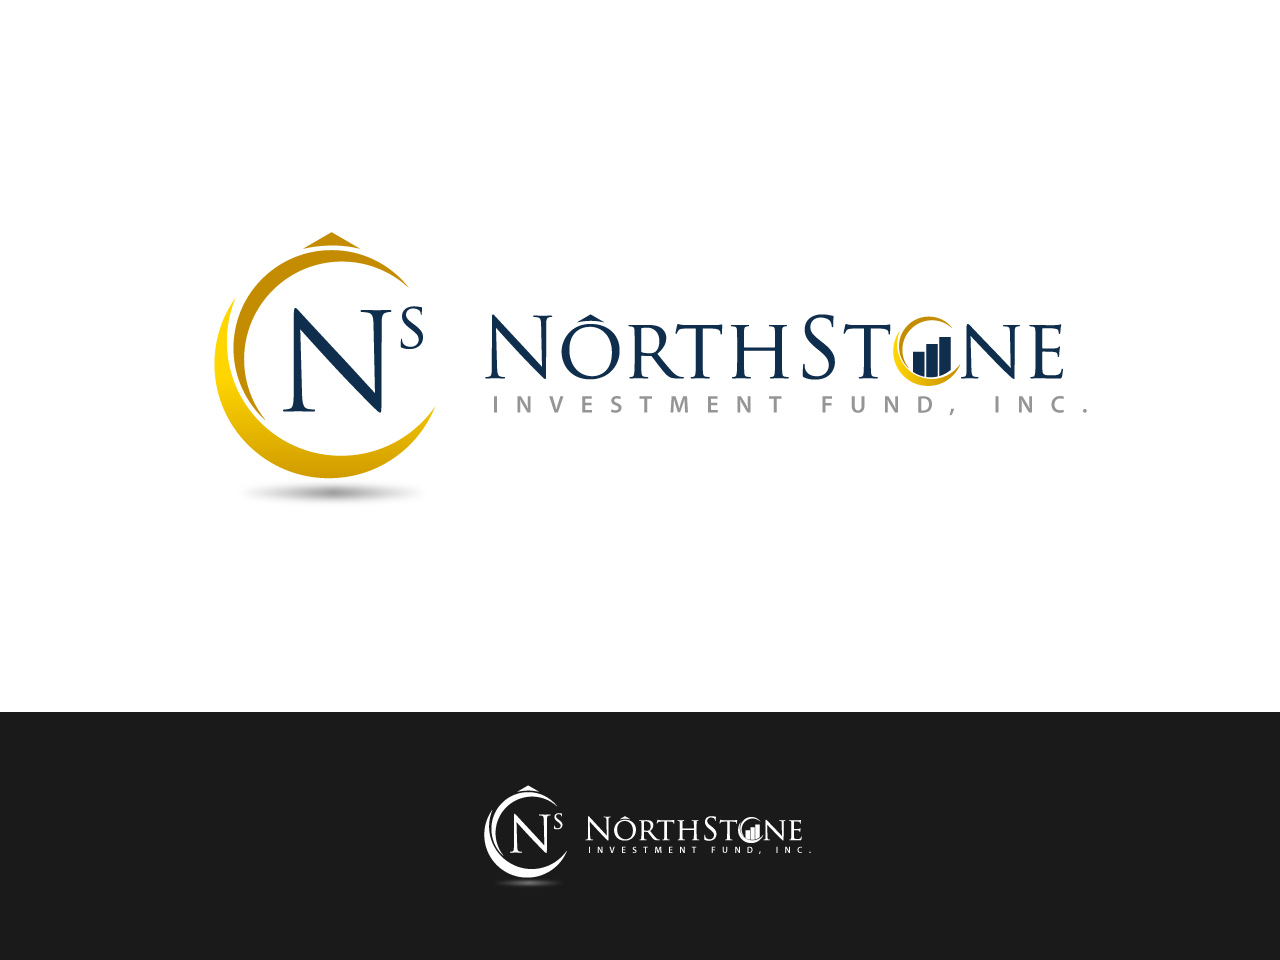 Logo Design by jpbituin - Entry No. 48 in the Logo Design Contest Unique Logo Design Wanted for NorthStone Investment Fund Inc.